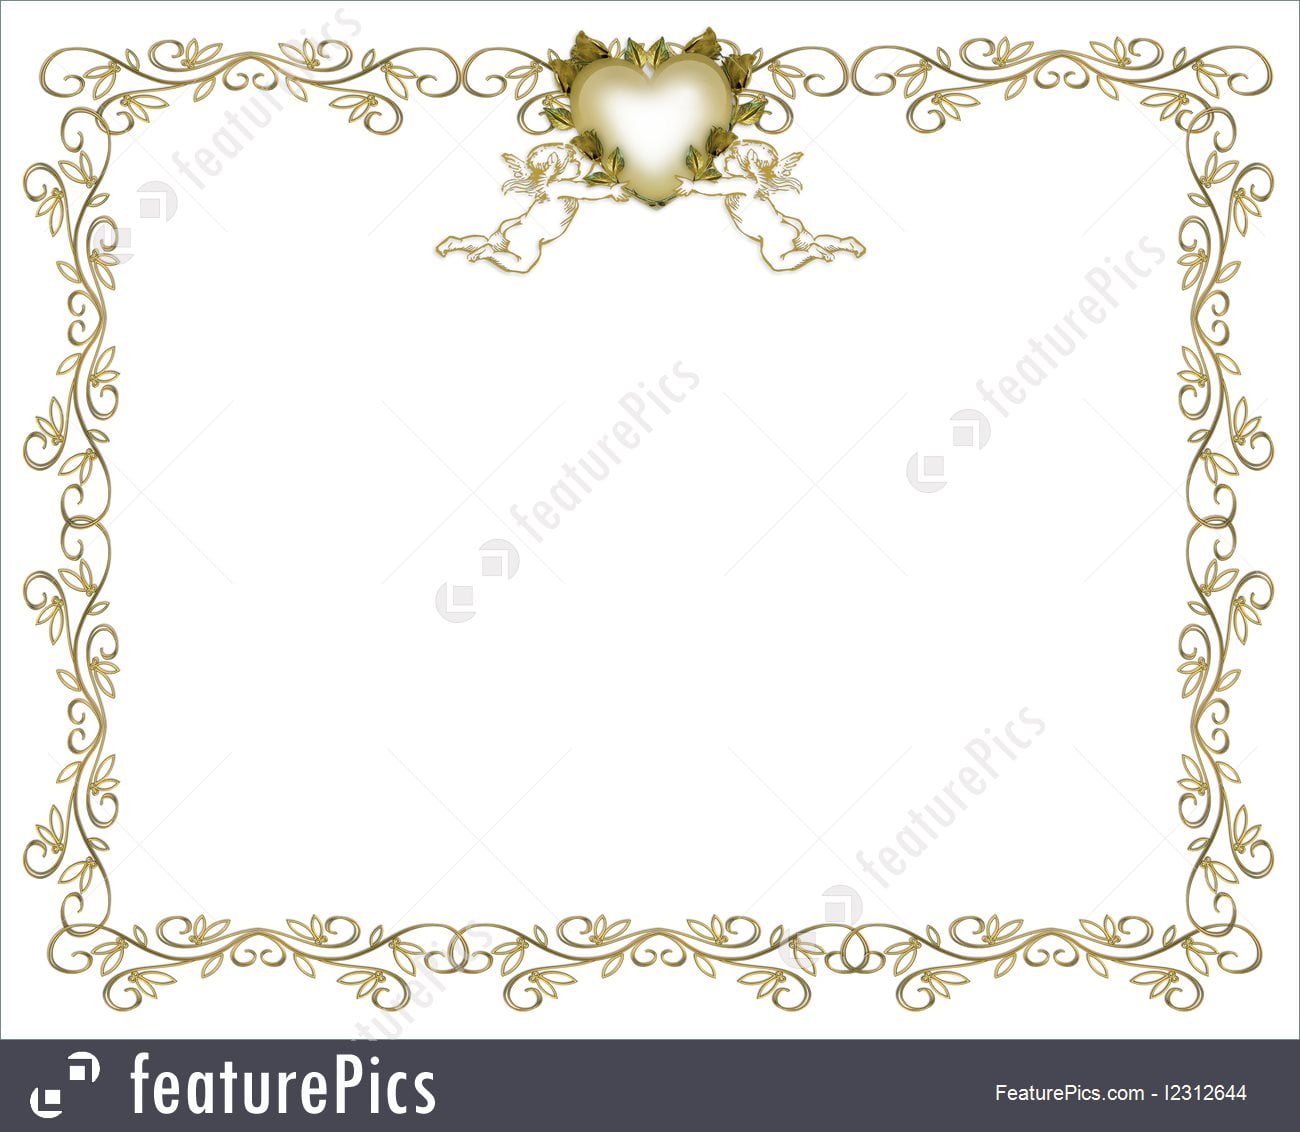 Templates  Wedding Invitation Gold Border Angels